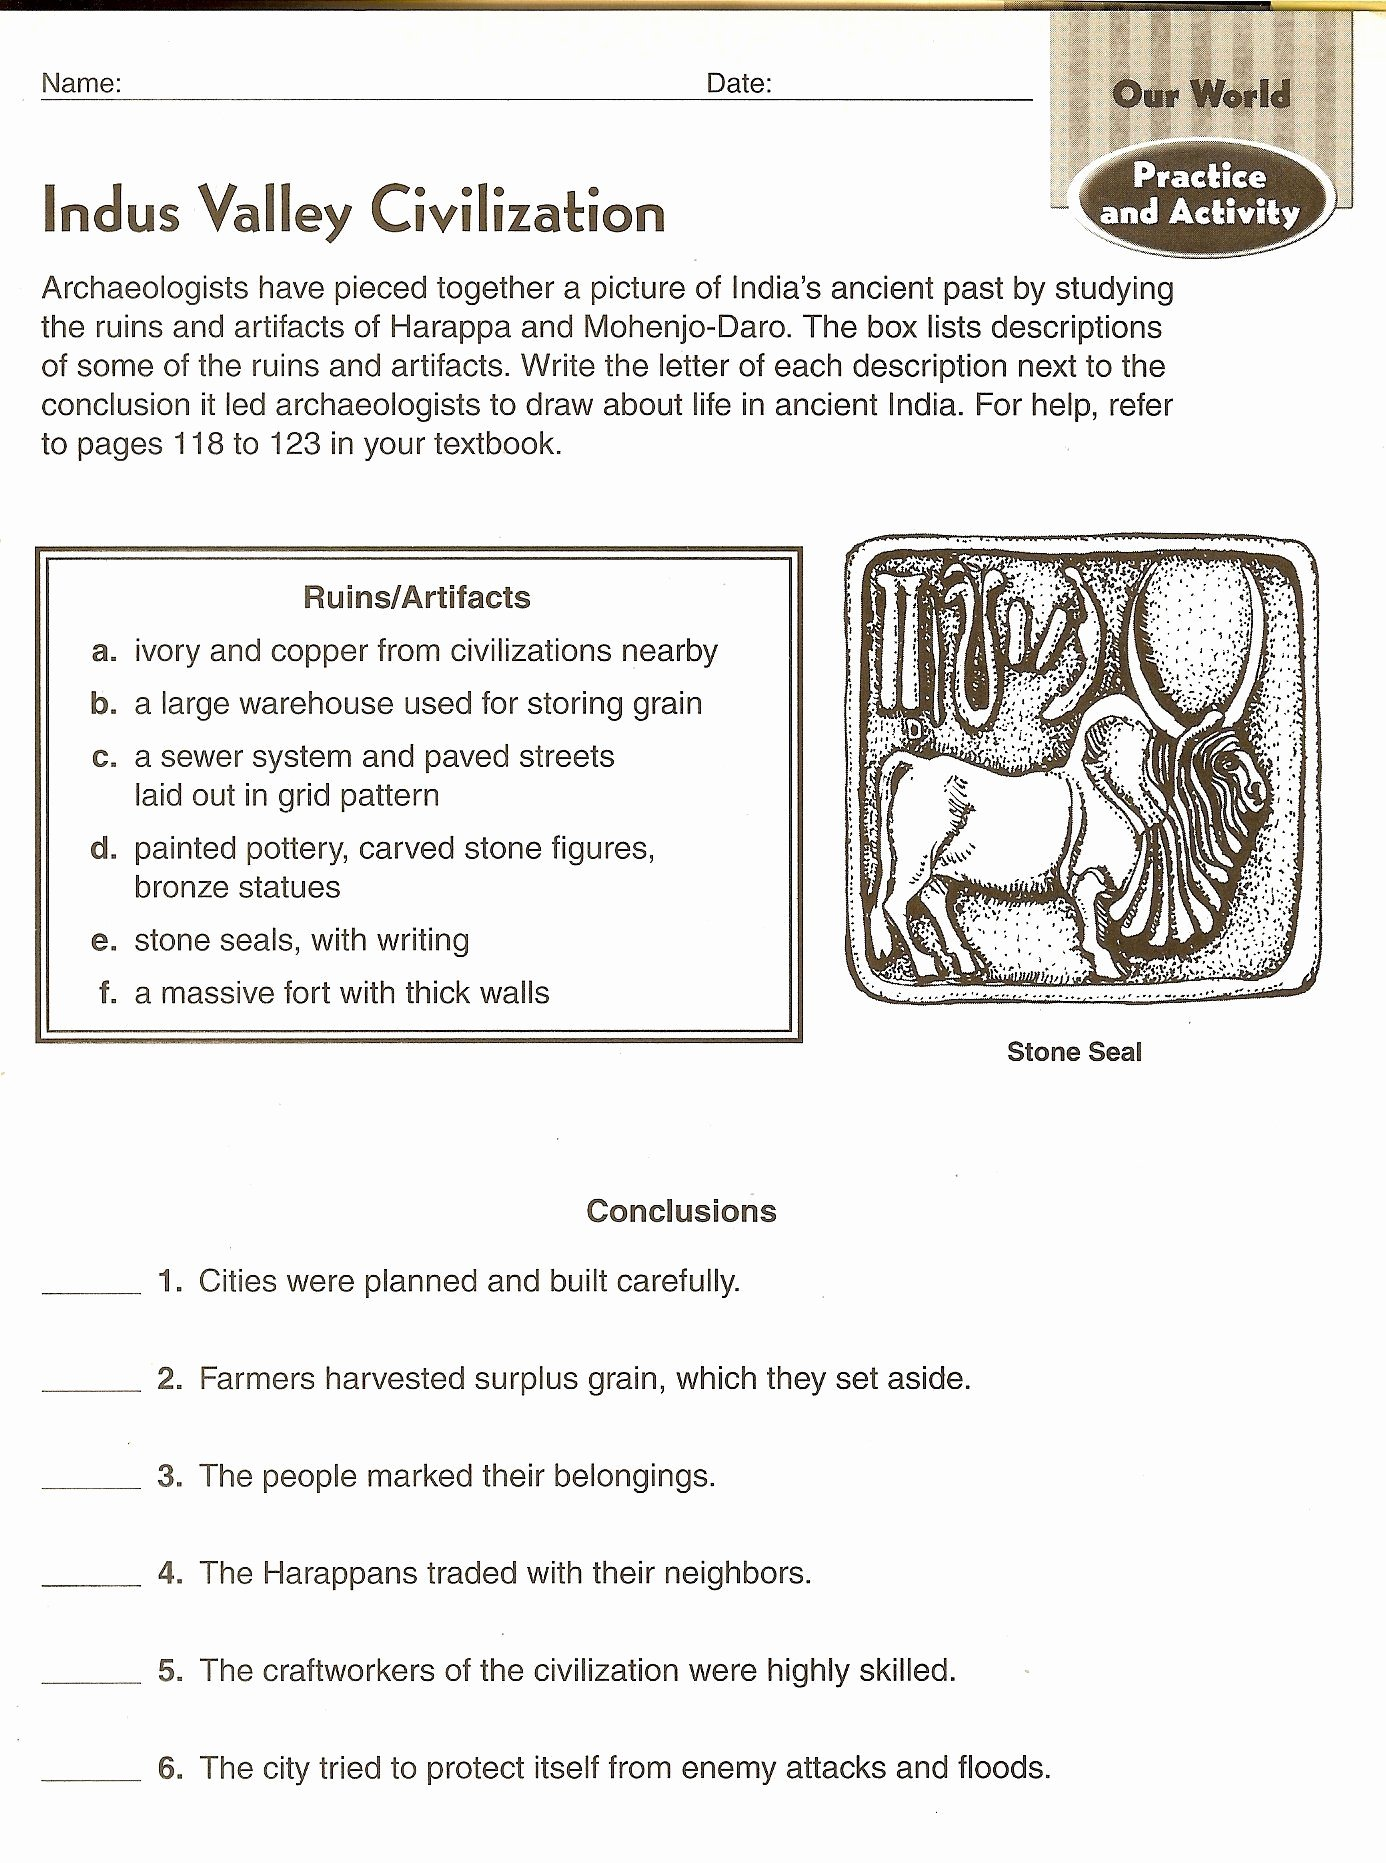 River Valley Civilizations Worksheet Answers Best Of 50 River Valley Civilizations Worksheet Answers 2020